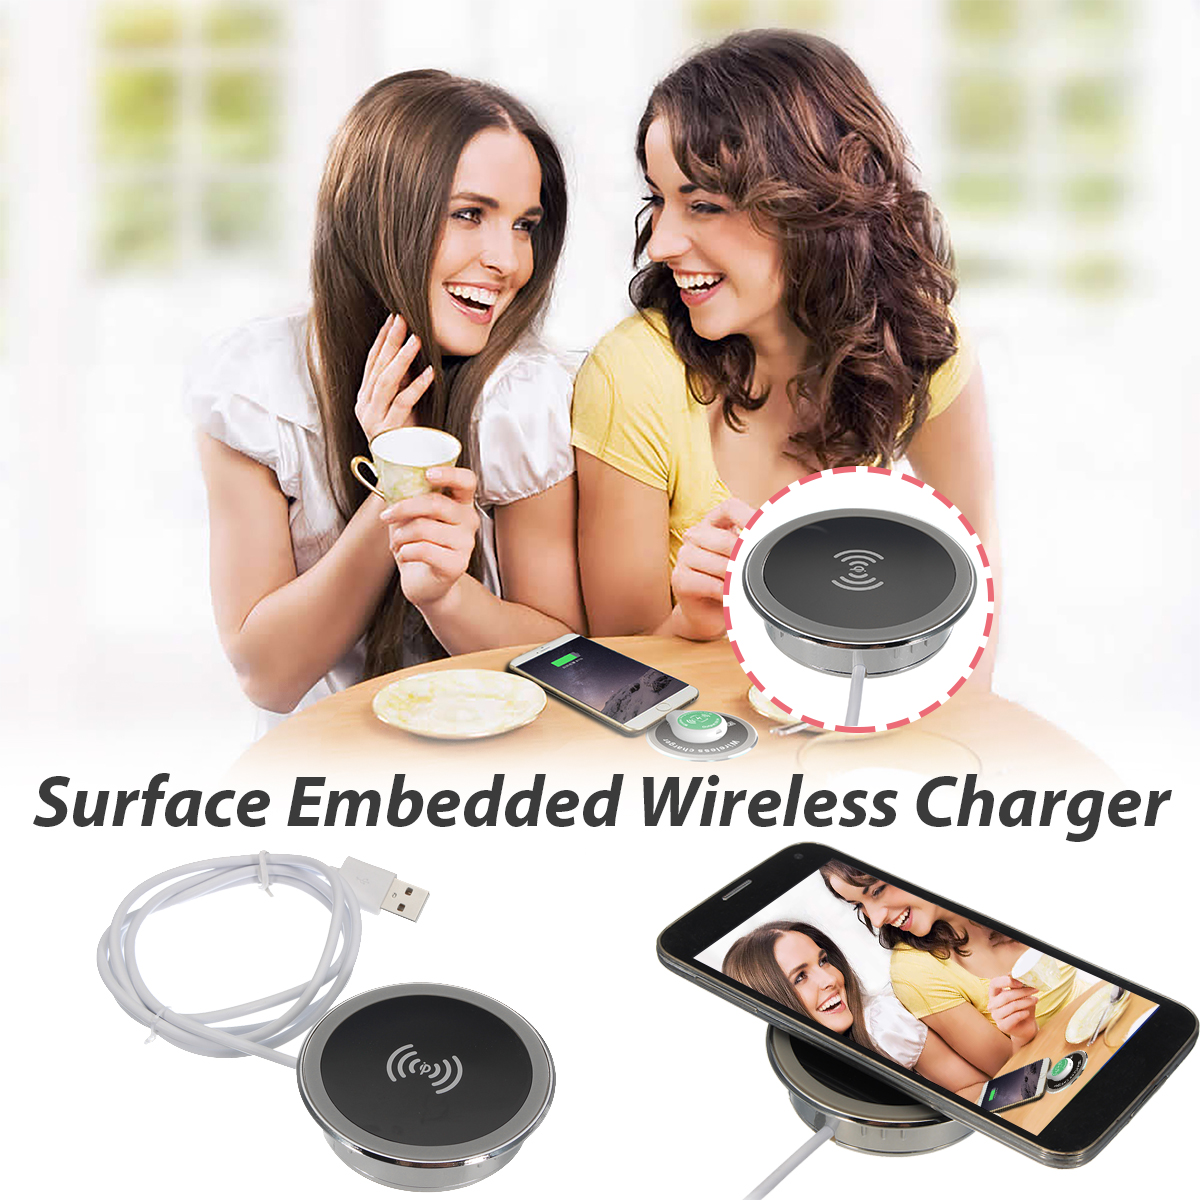 Qi Wireless Embedded Desktop Charger for Samsung Galaxy S7 iPhone X 8 Plus